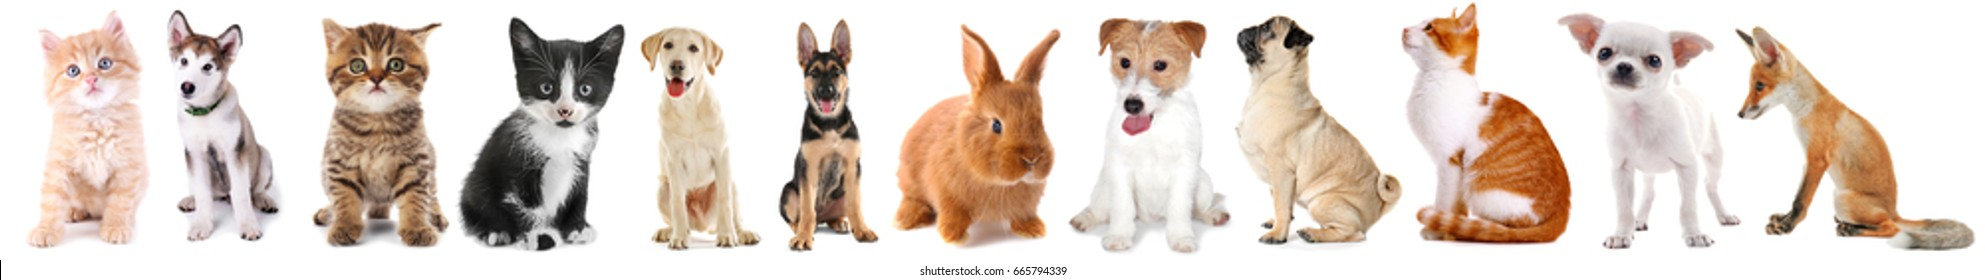 Collage of cute baby animals on white background - Shutterstock ID 665794339